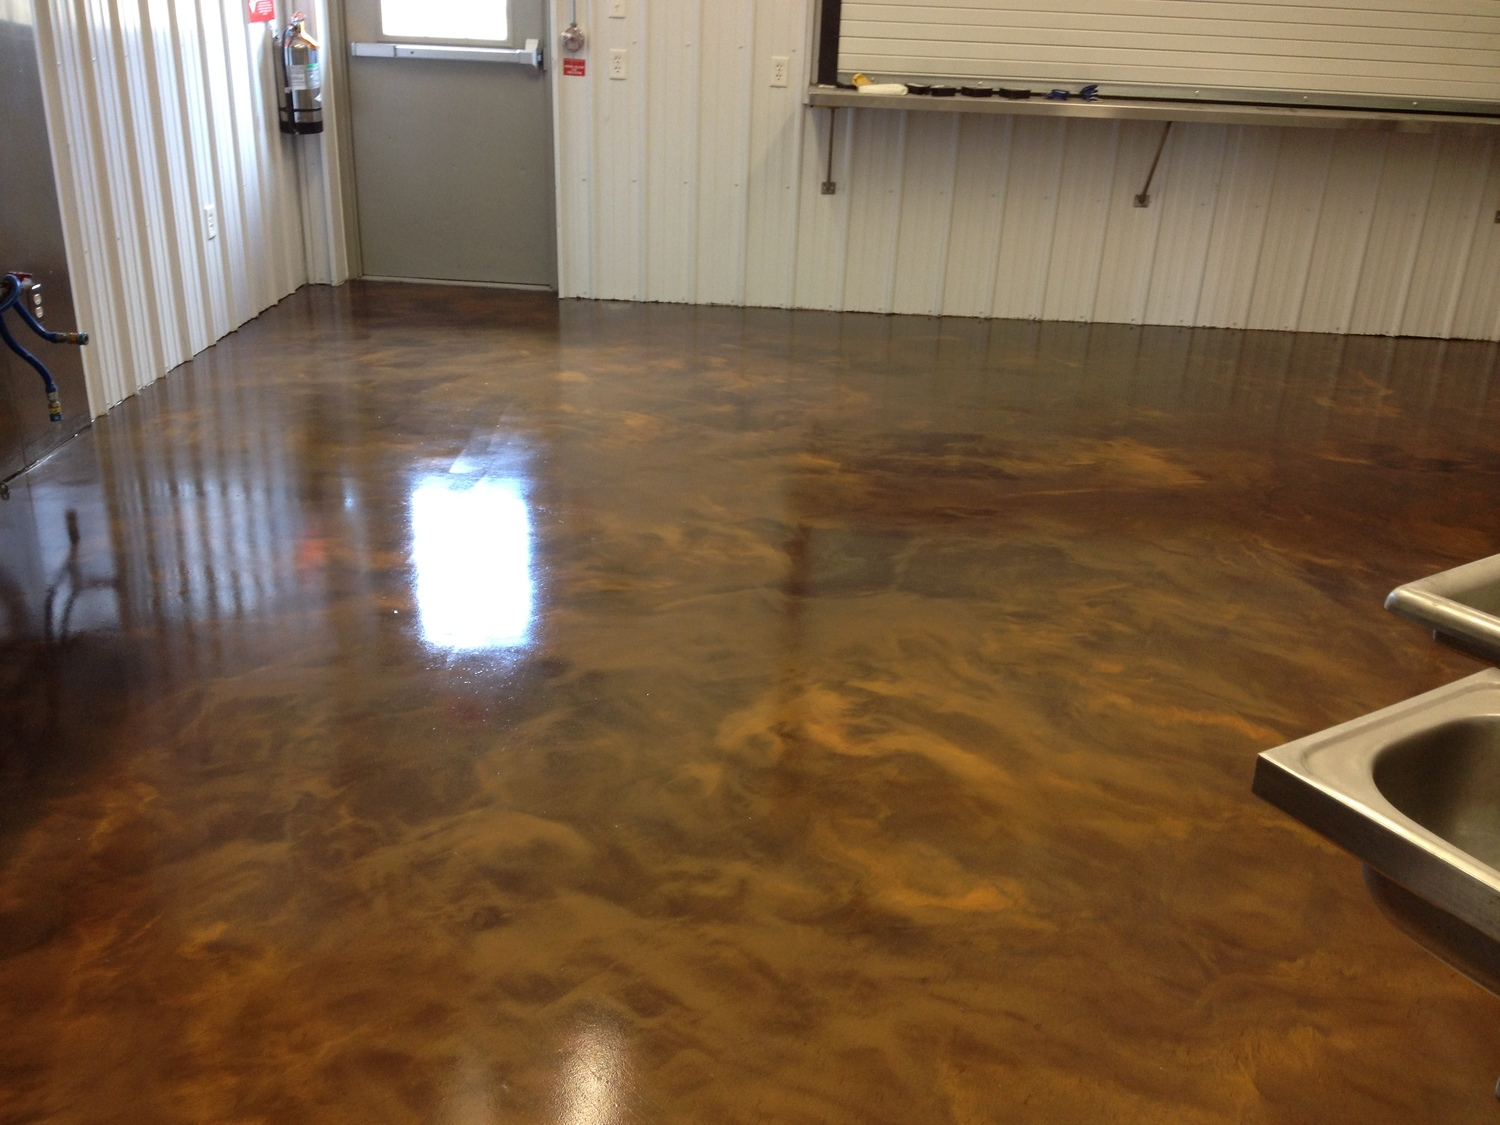 inc midwest iowa agency concrete epoxy grmc industrial flooring floor the ics coating burlington and throughout coatings systems installing protective